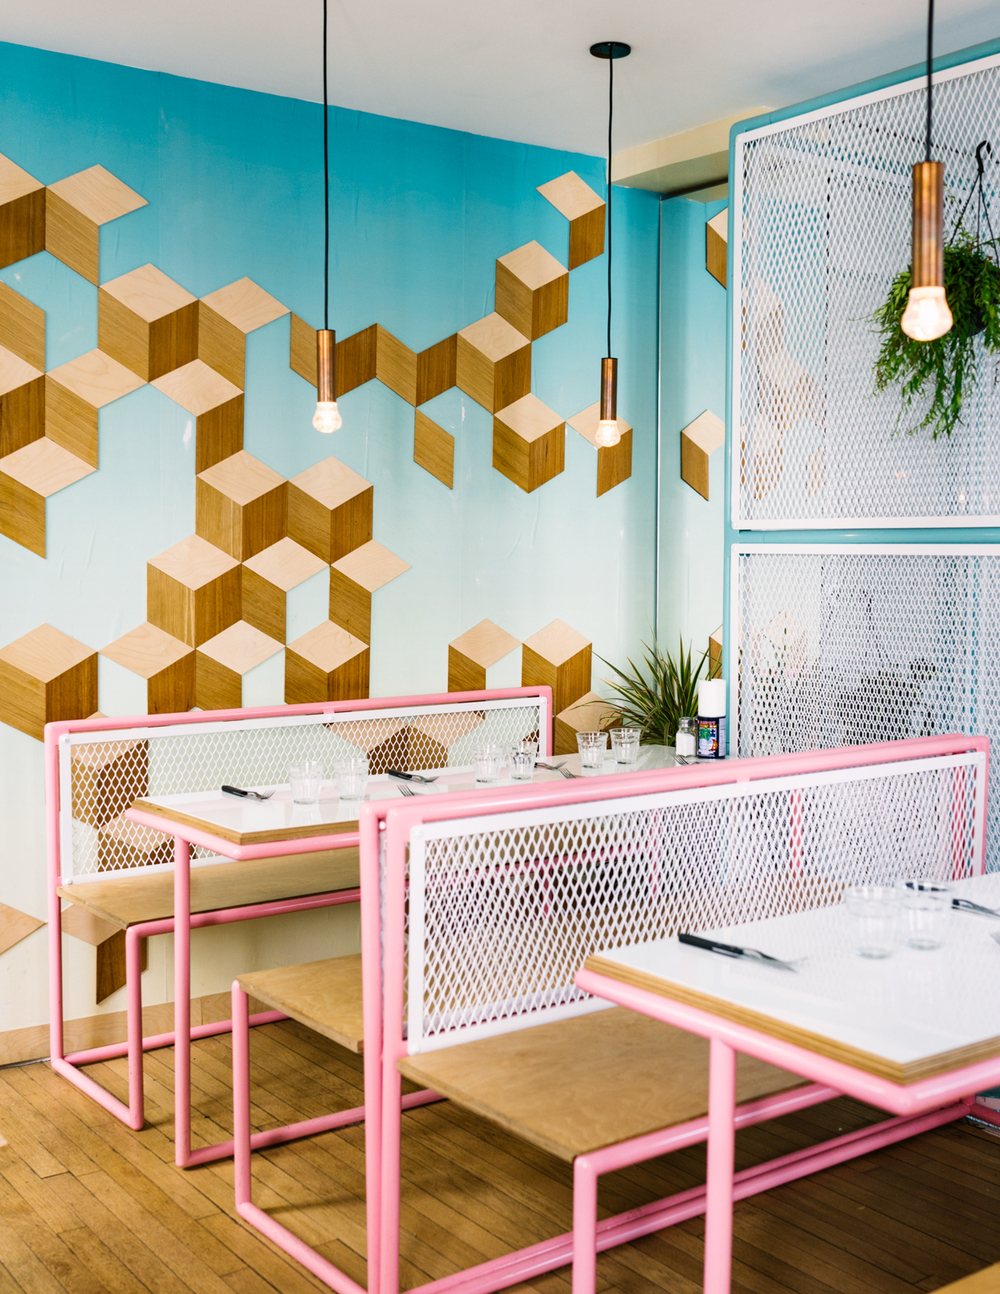 PARIS NEW YORK (MARAIS)   1 Rue Perree, 75003    INSIDER TIP  | Most burger joints in Paris have a very black and white color palate but at Paris New York's Haut Marais location, they brought a fresh look - a bit Miami diner meets Marais cafe.